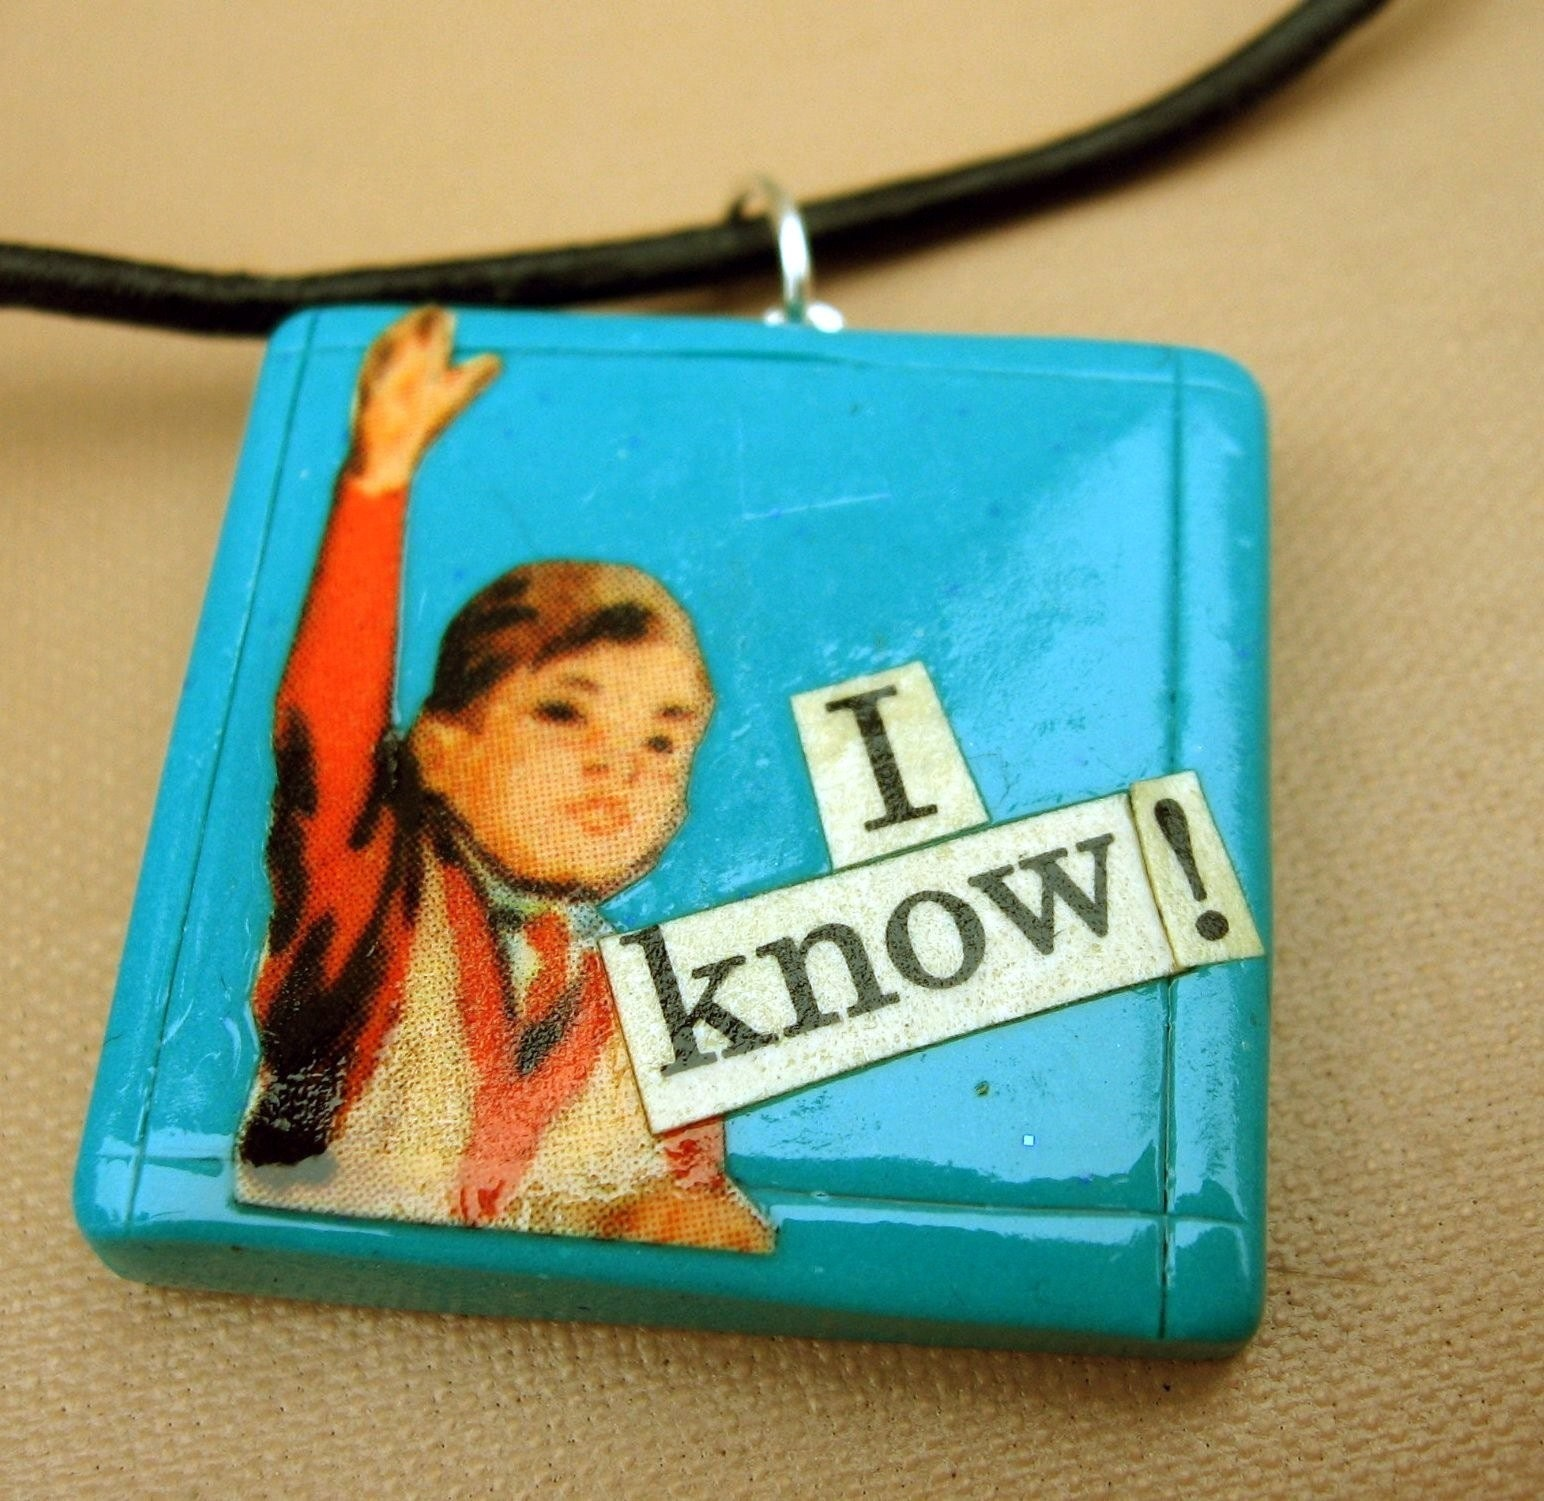 I Know pendant (on leather cord)